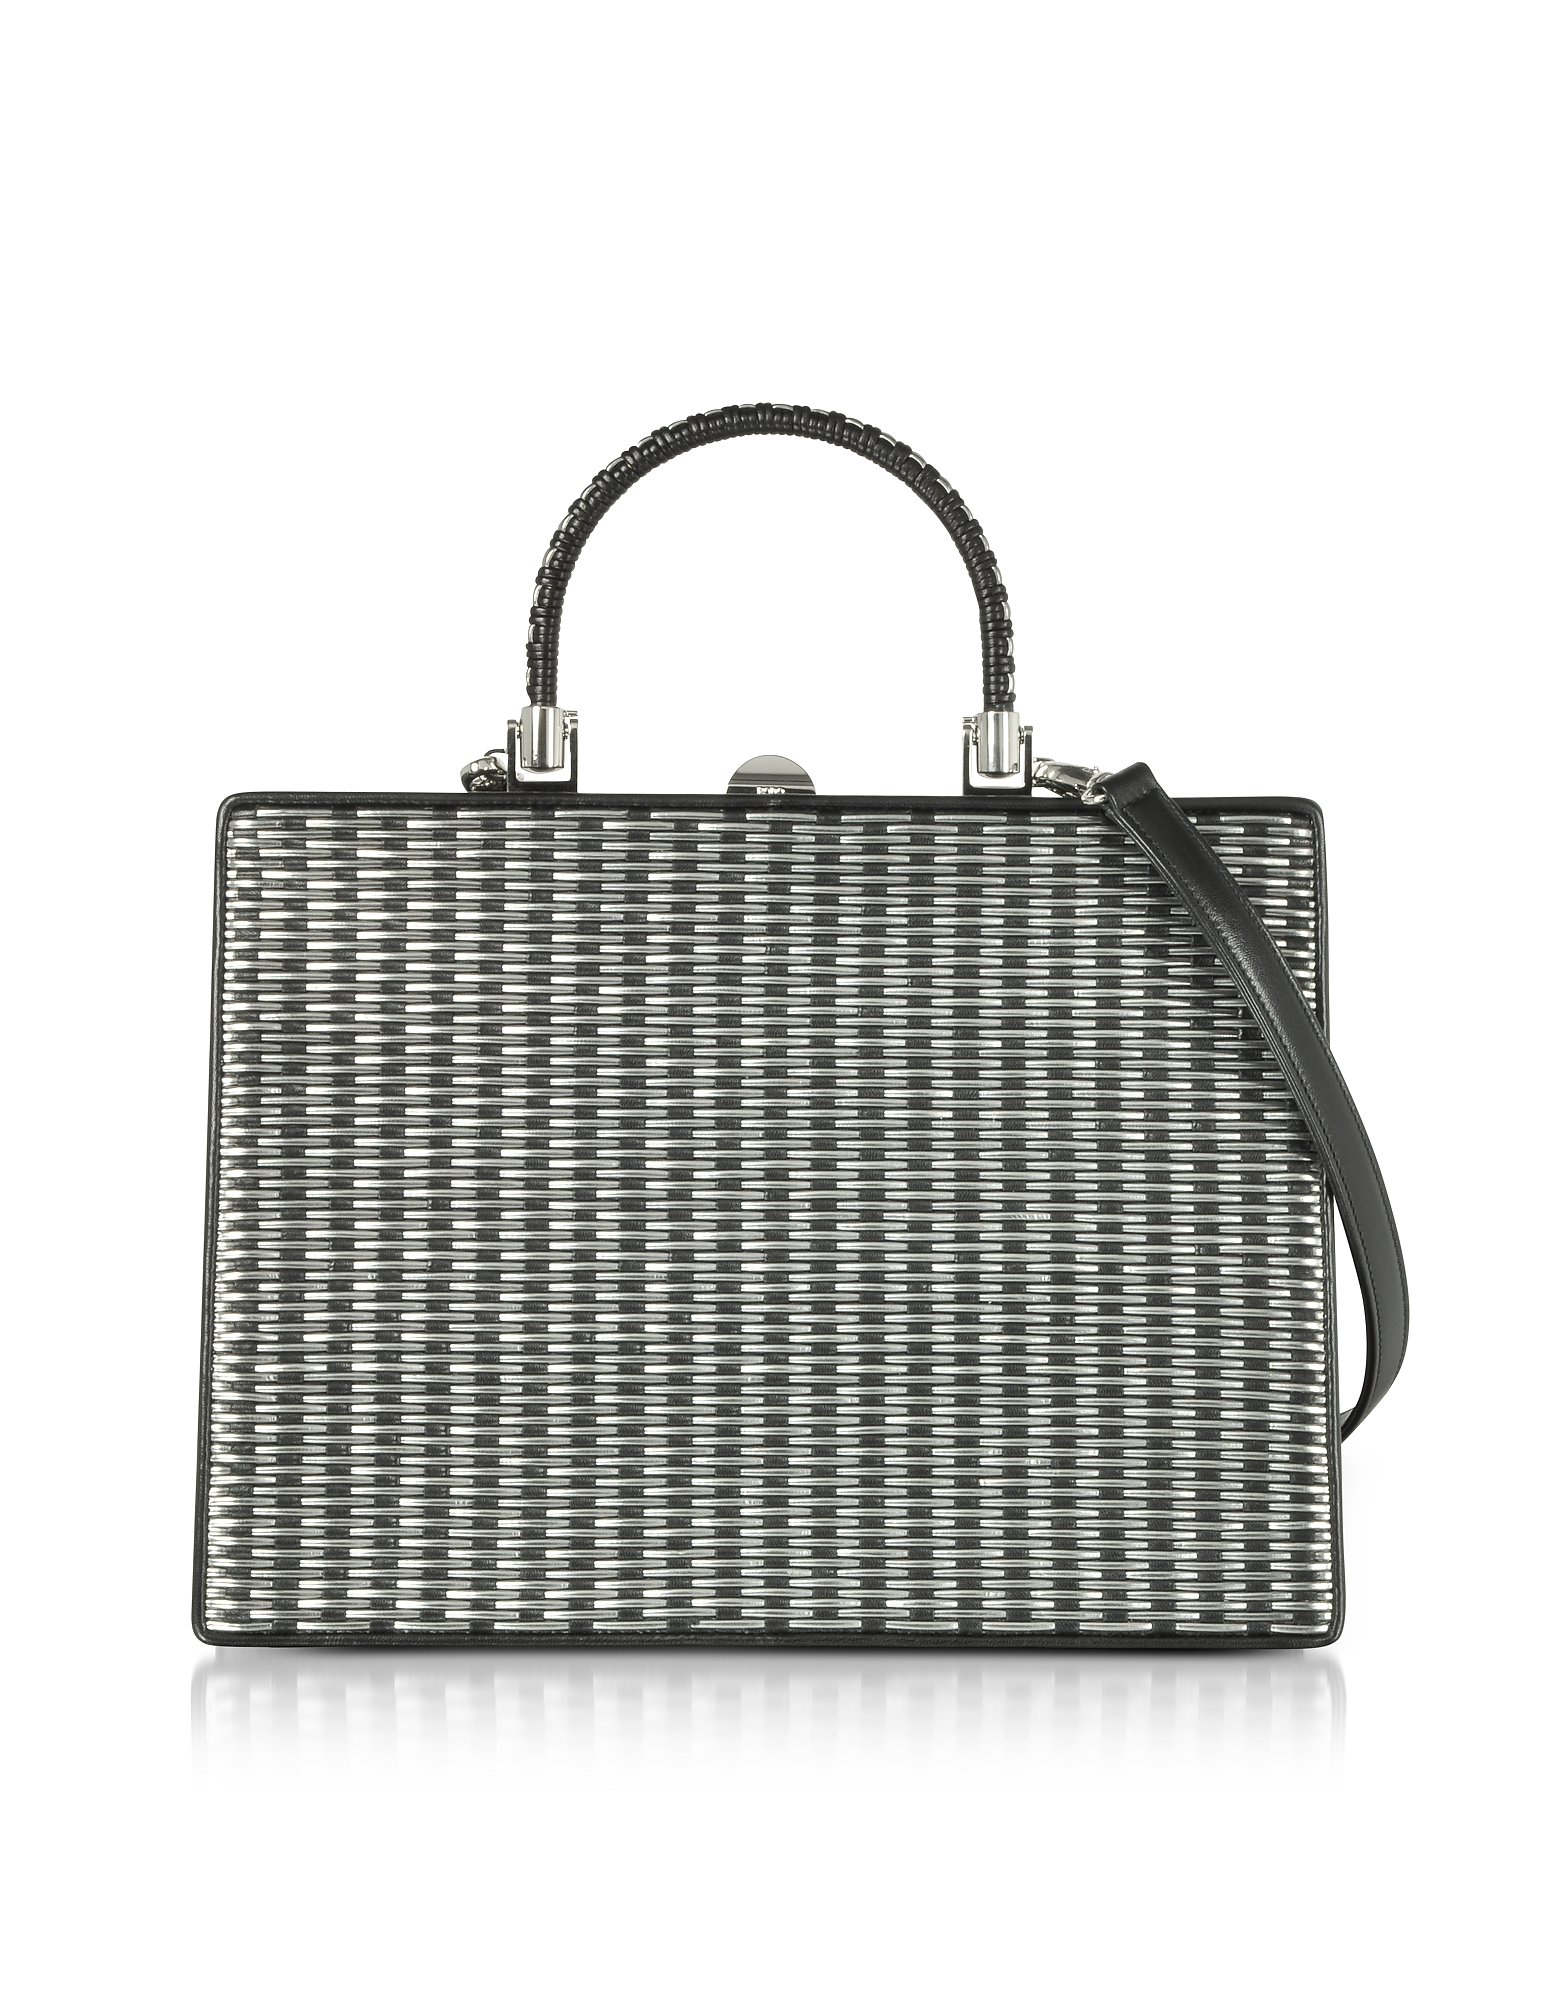 Black and Silver Woven Leather Squared Satchel Bag